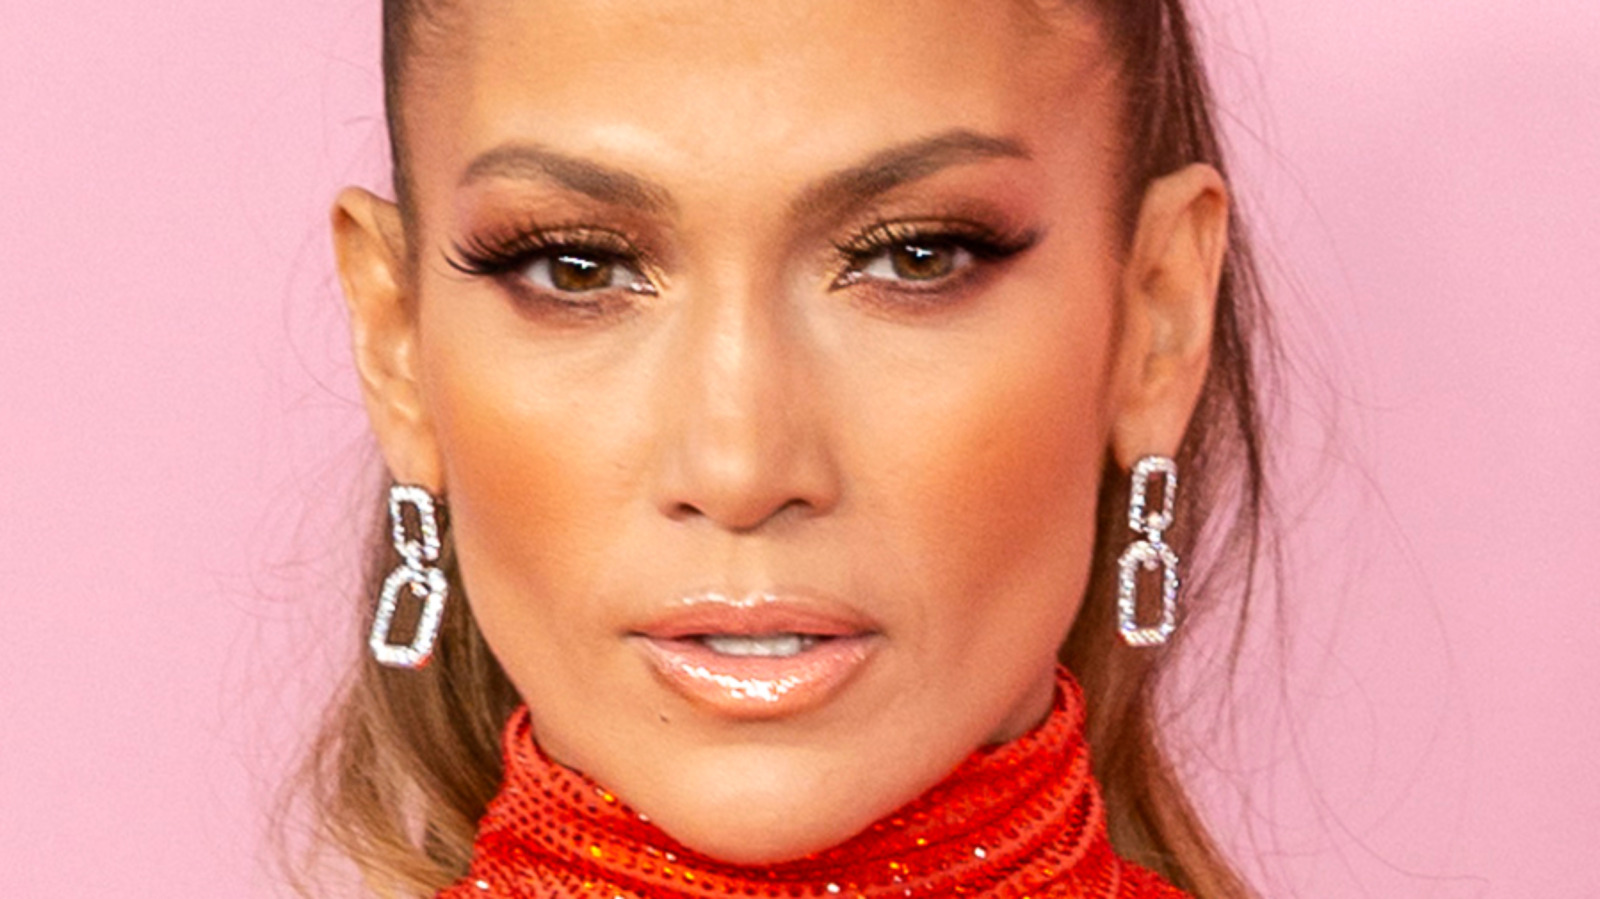 A Special Guest Joined Jennifer Lopez On Stage In Her Latest Concert